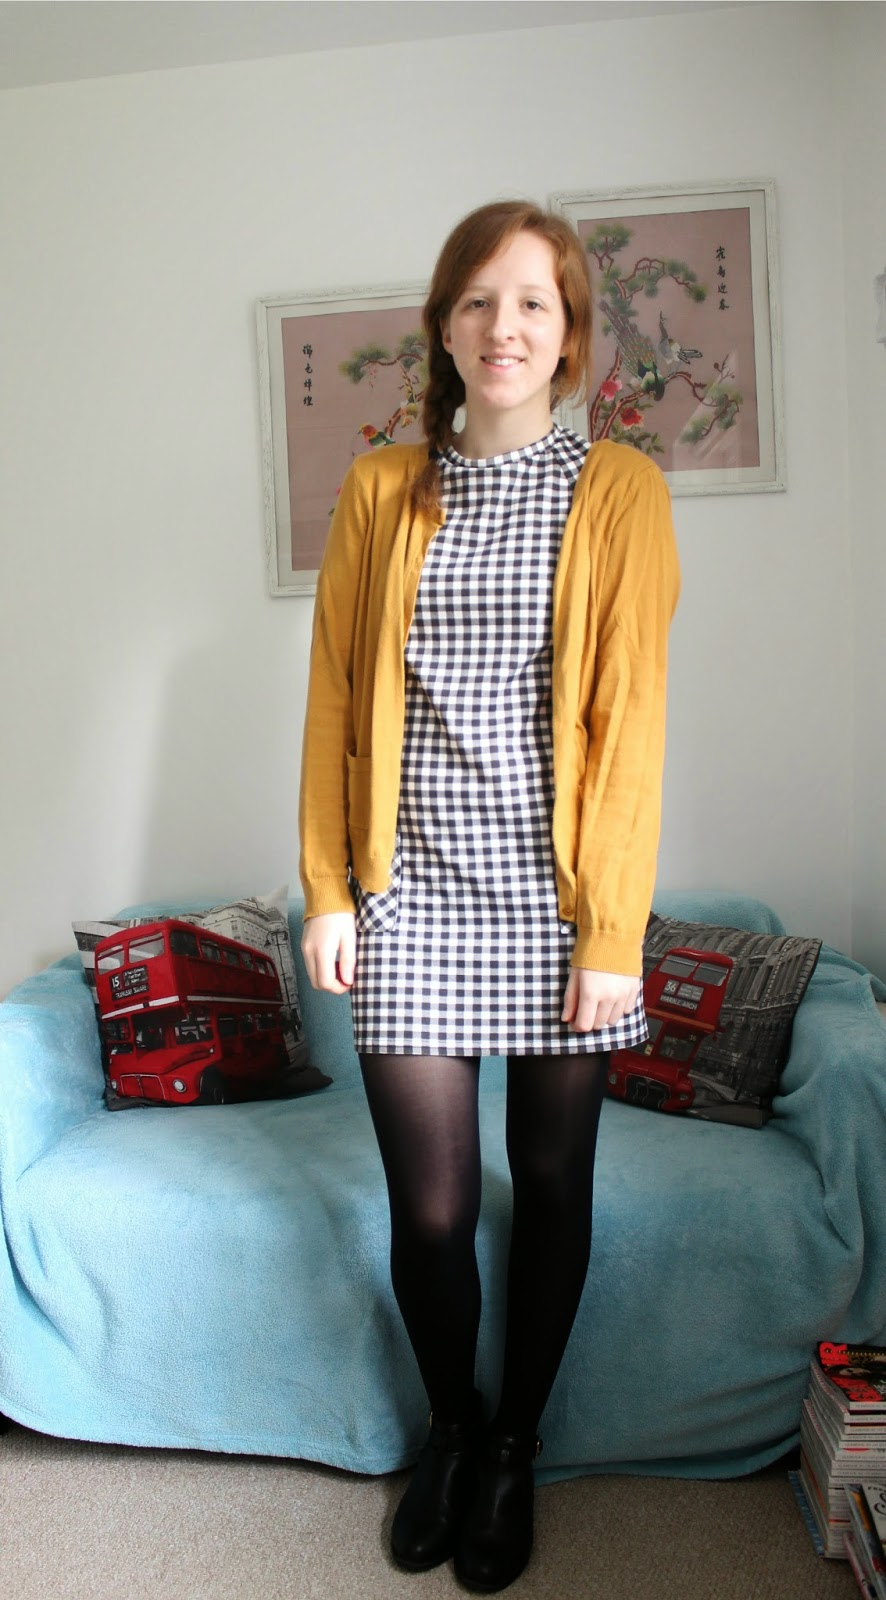 OOTD: 60s Gingham Dress and Fluffy Coat